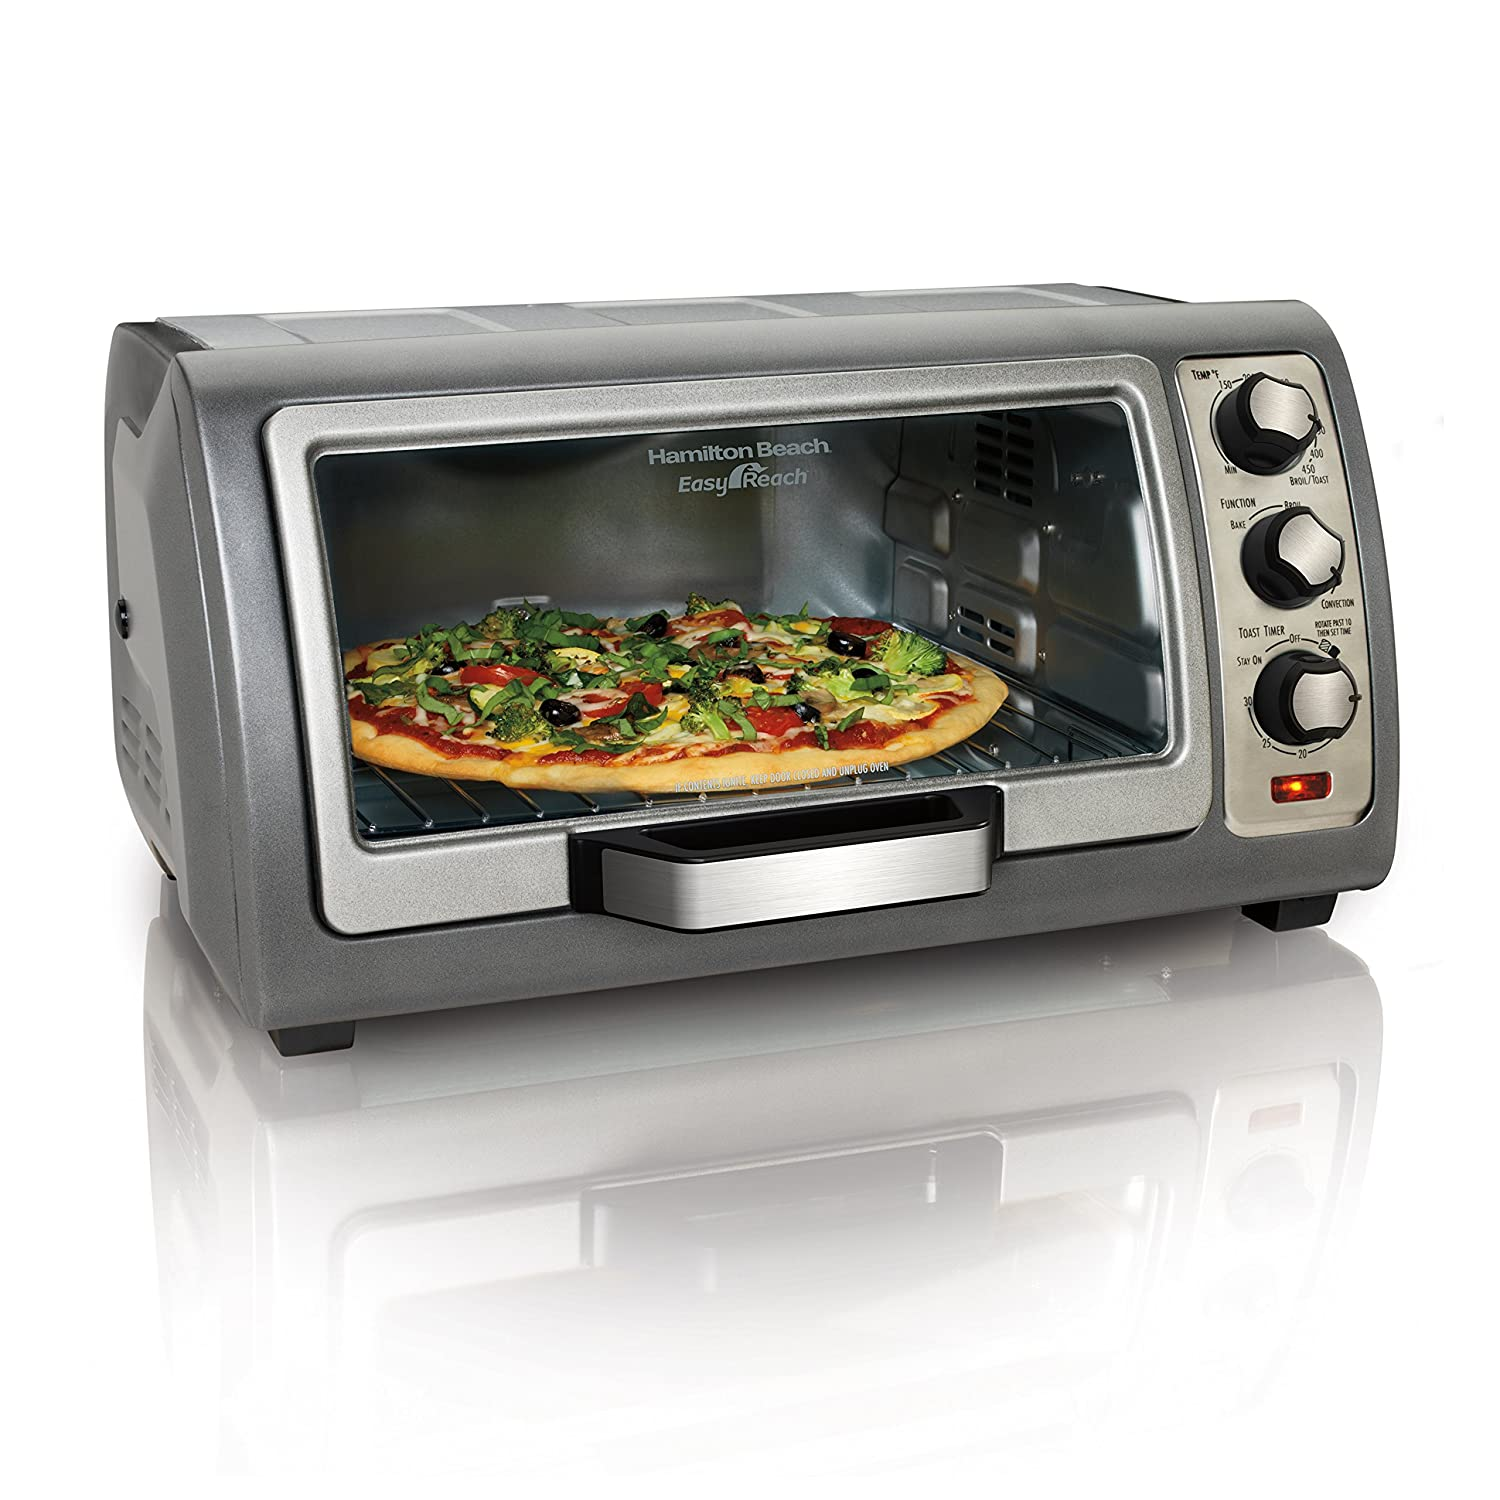 Best Toaster Oven 2017 2018 Top Rated Toaster Ovens And